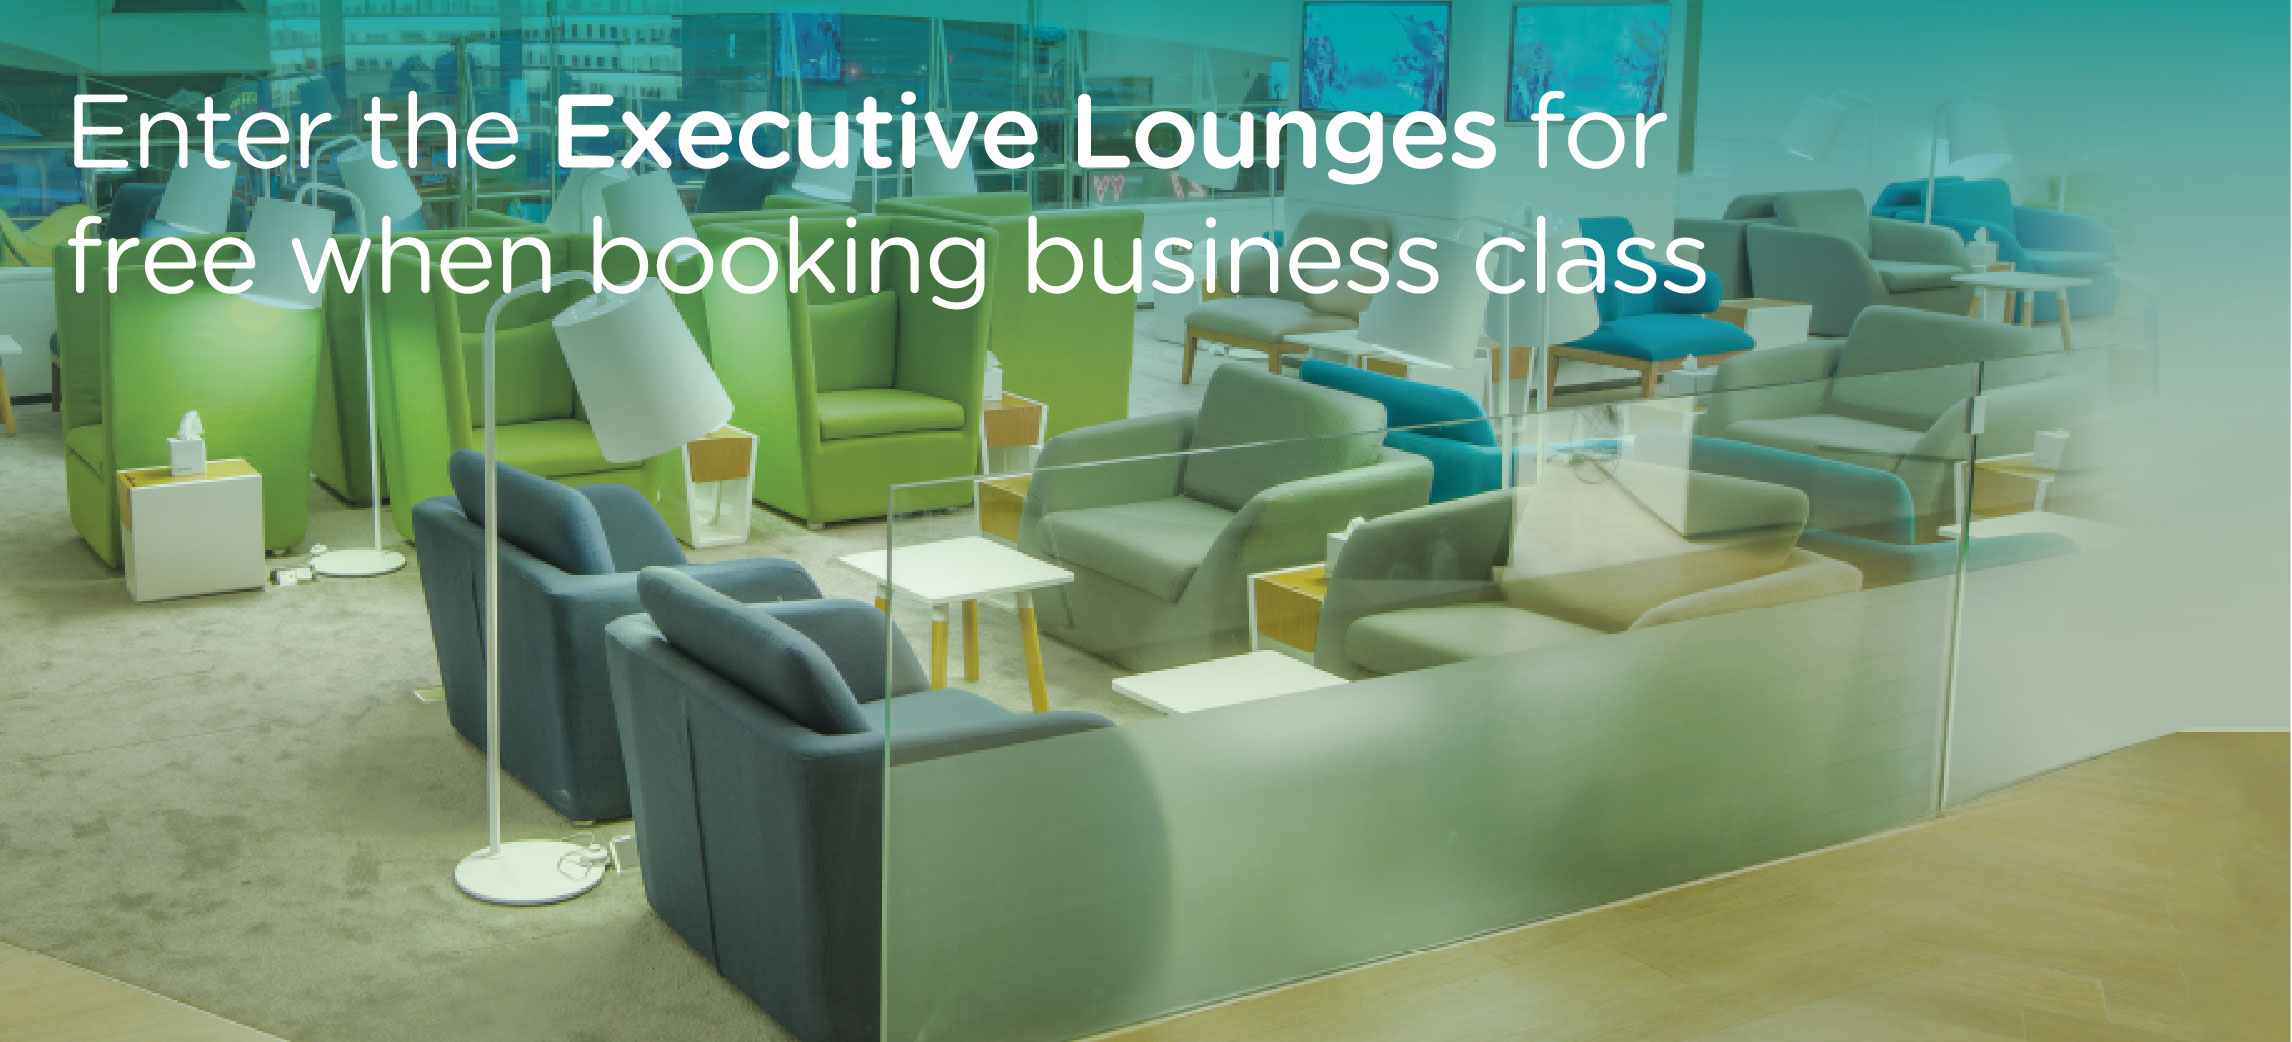 Welcome Lounge Business Landing Page Large en